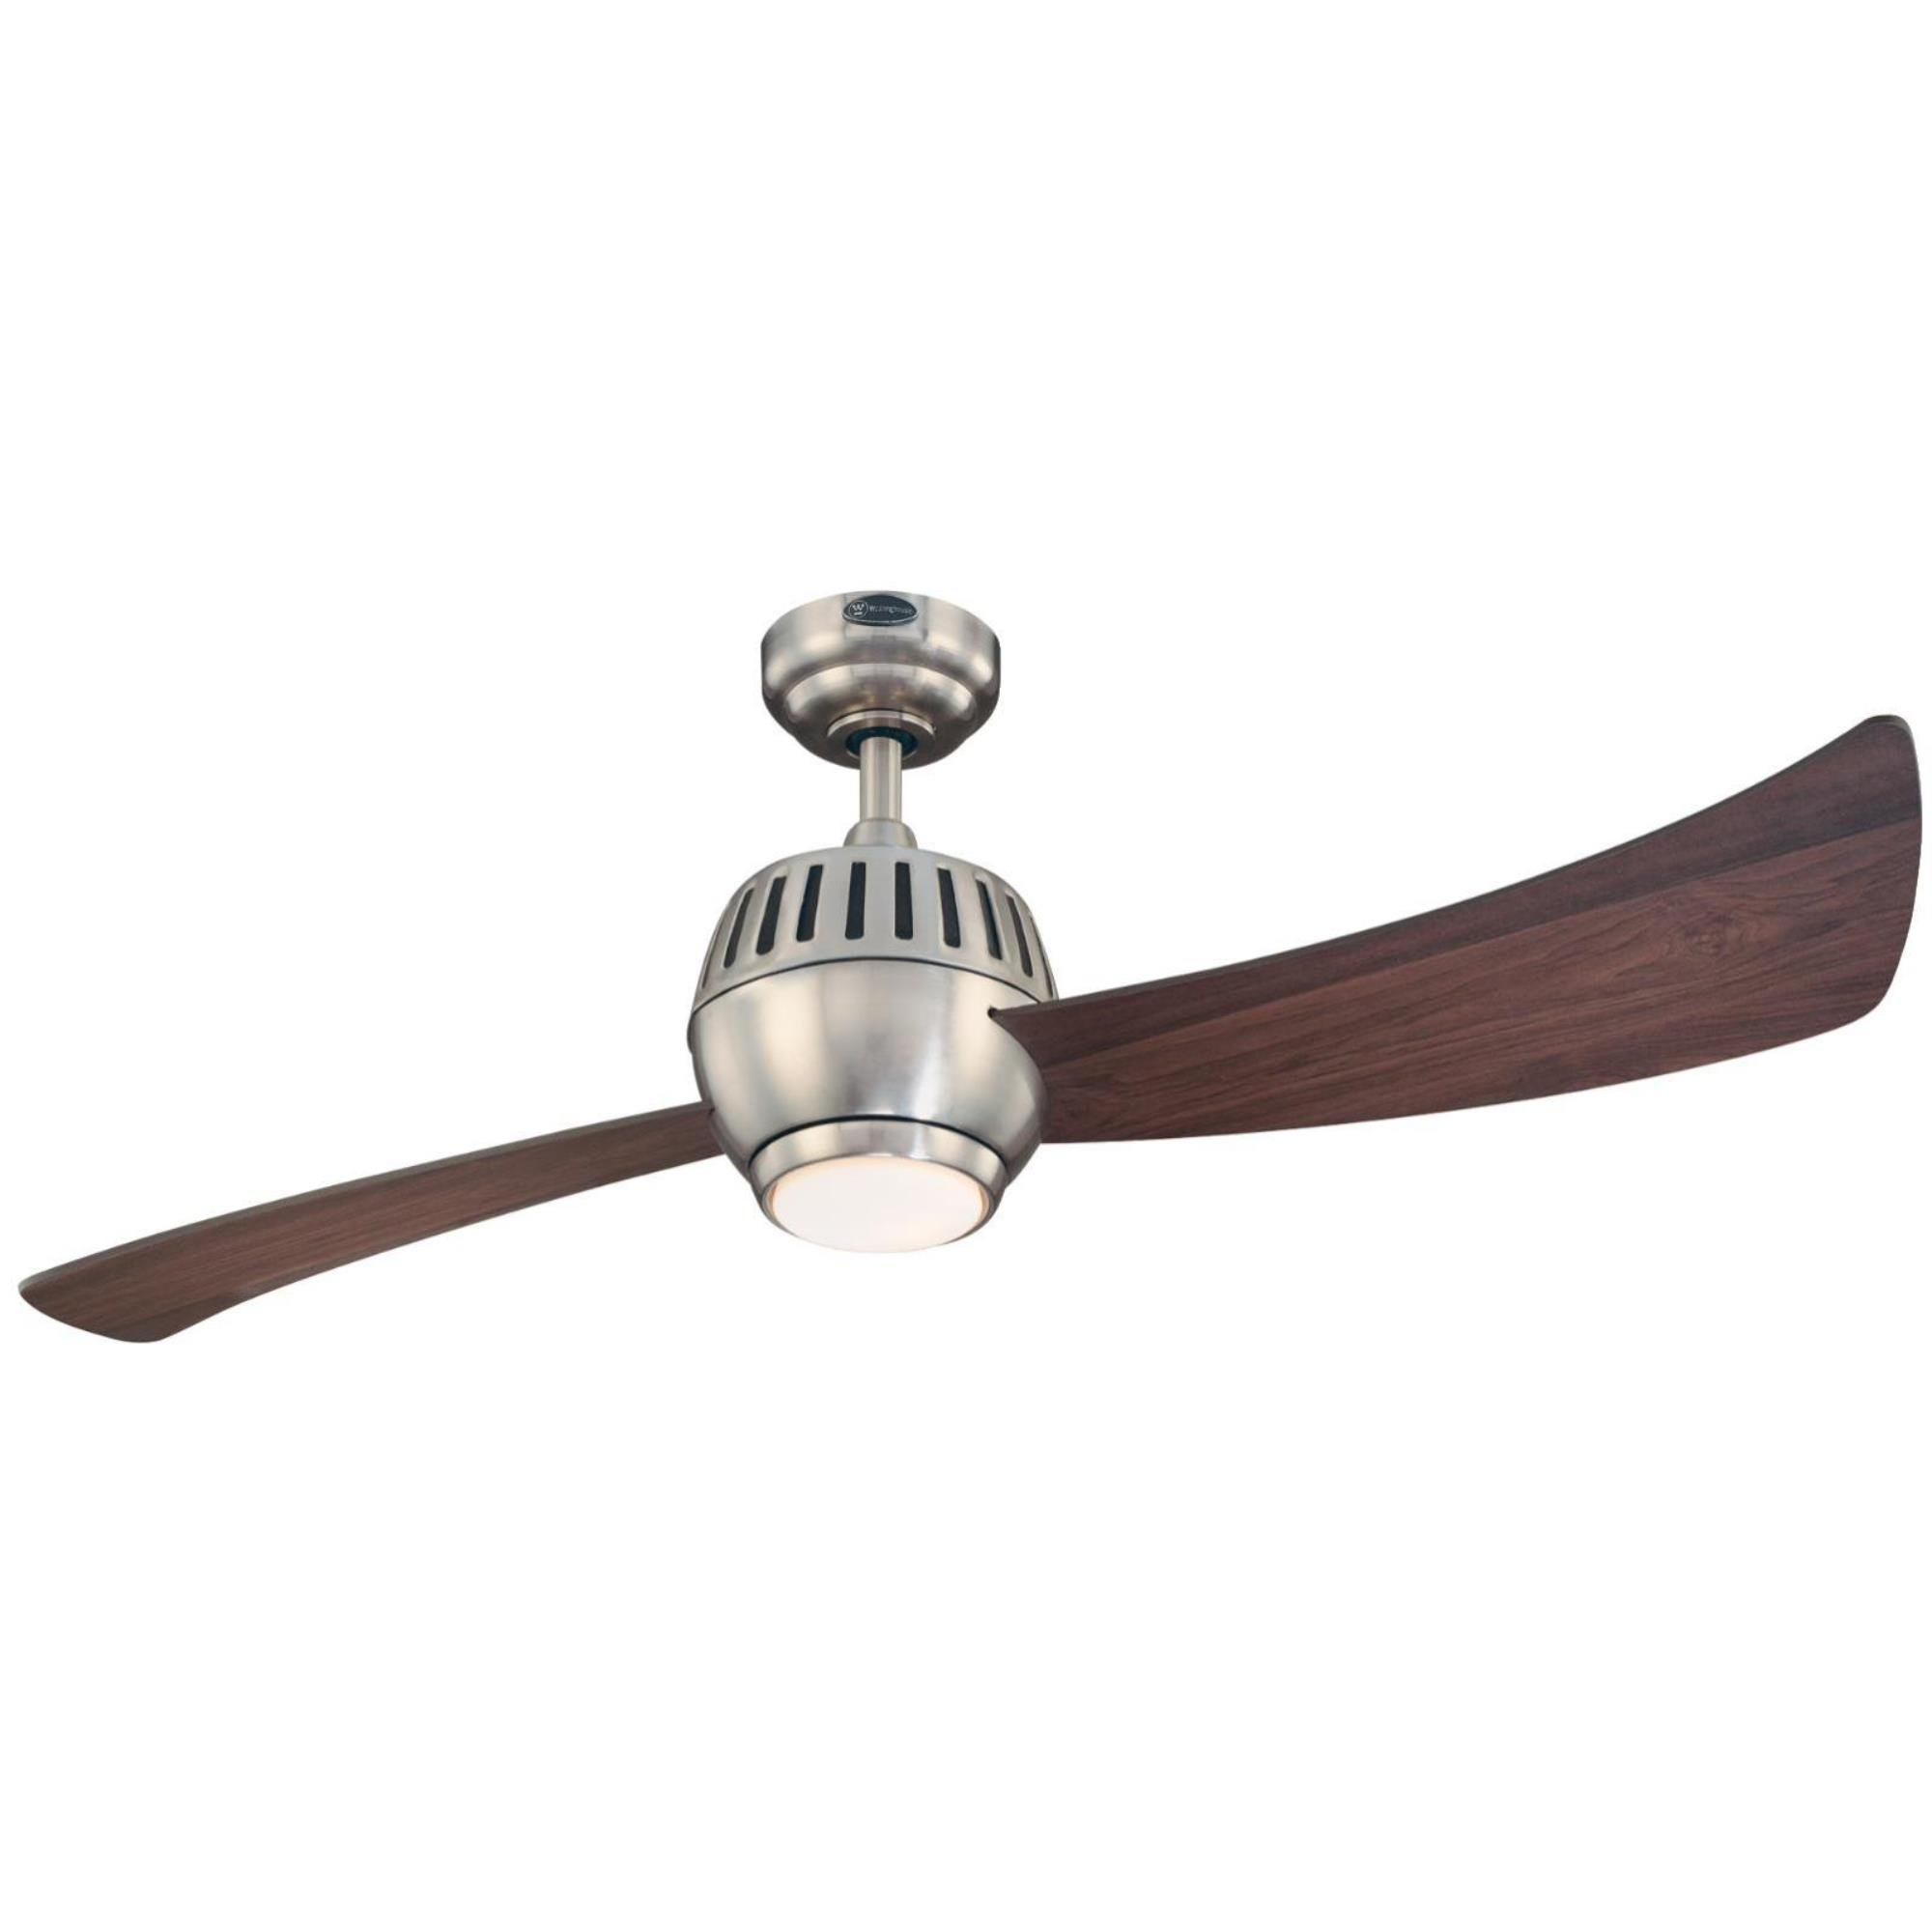 Westinghouse Lighting 7852400 Sparta One-Light 52-Inch Two-Blade Indoor Ceiling Fan, Brushed Nickel with Opal Glass